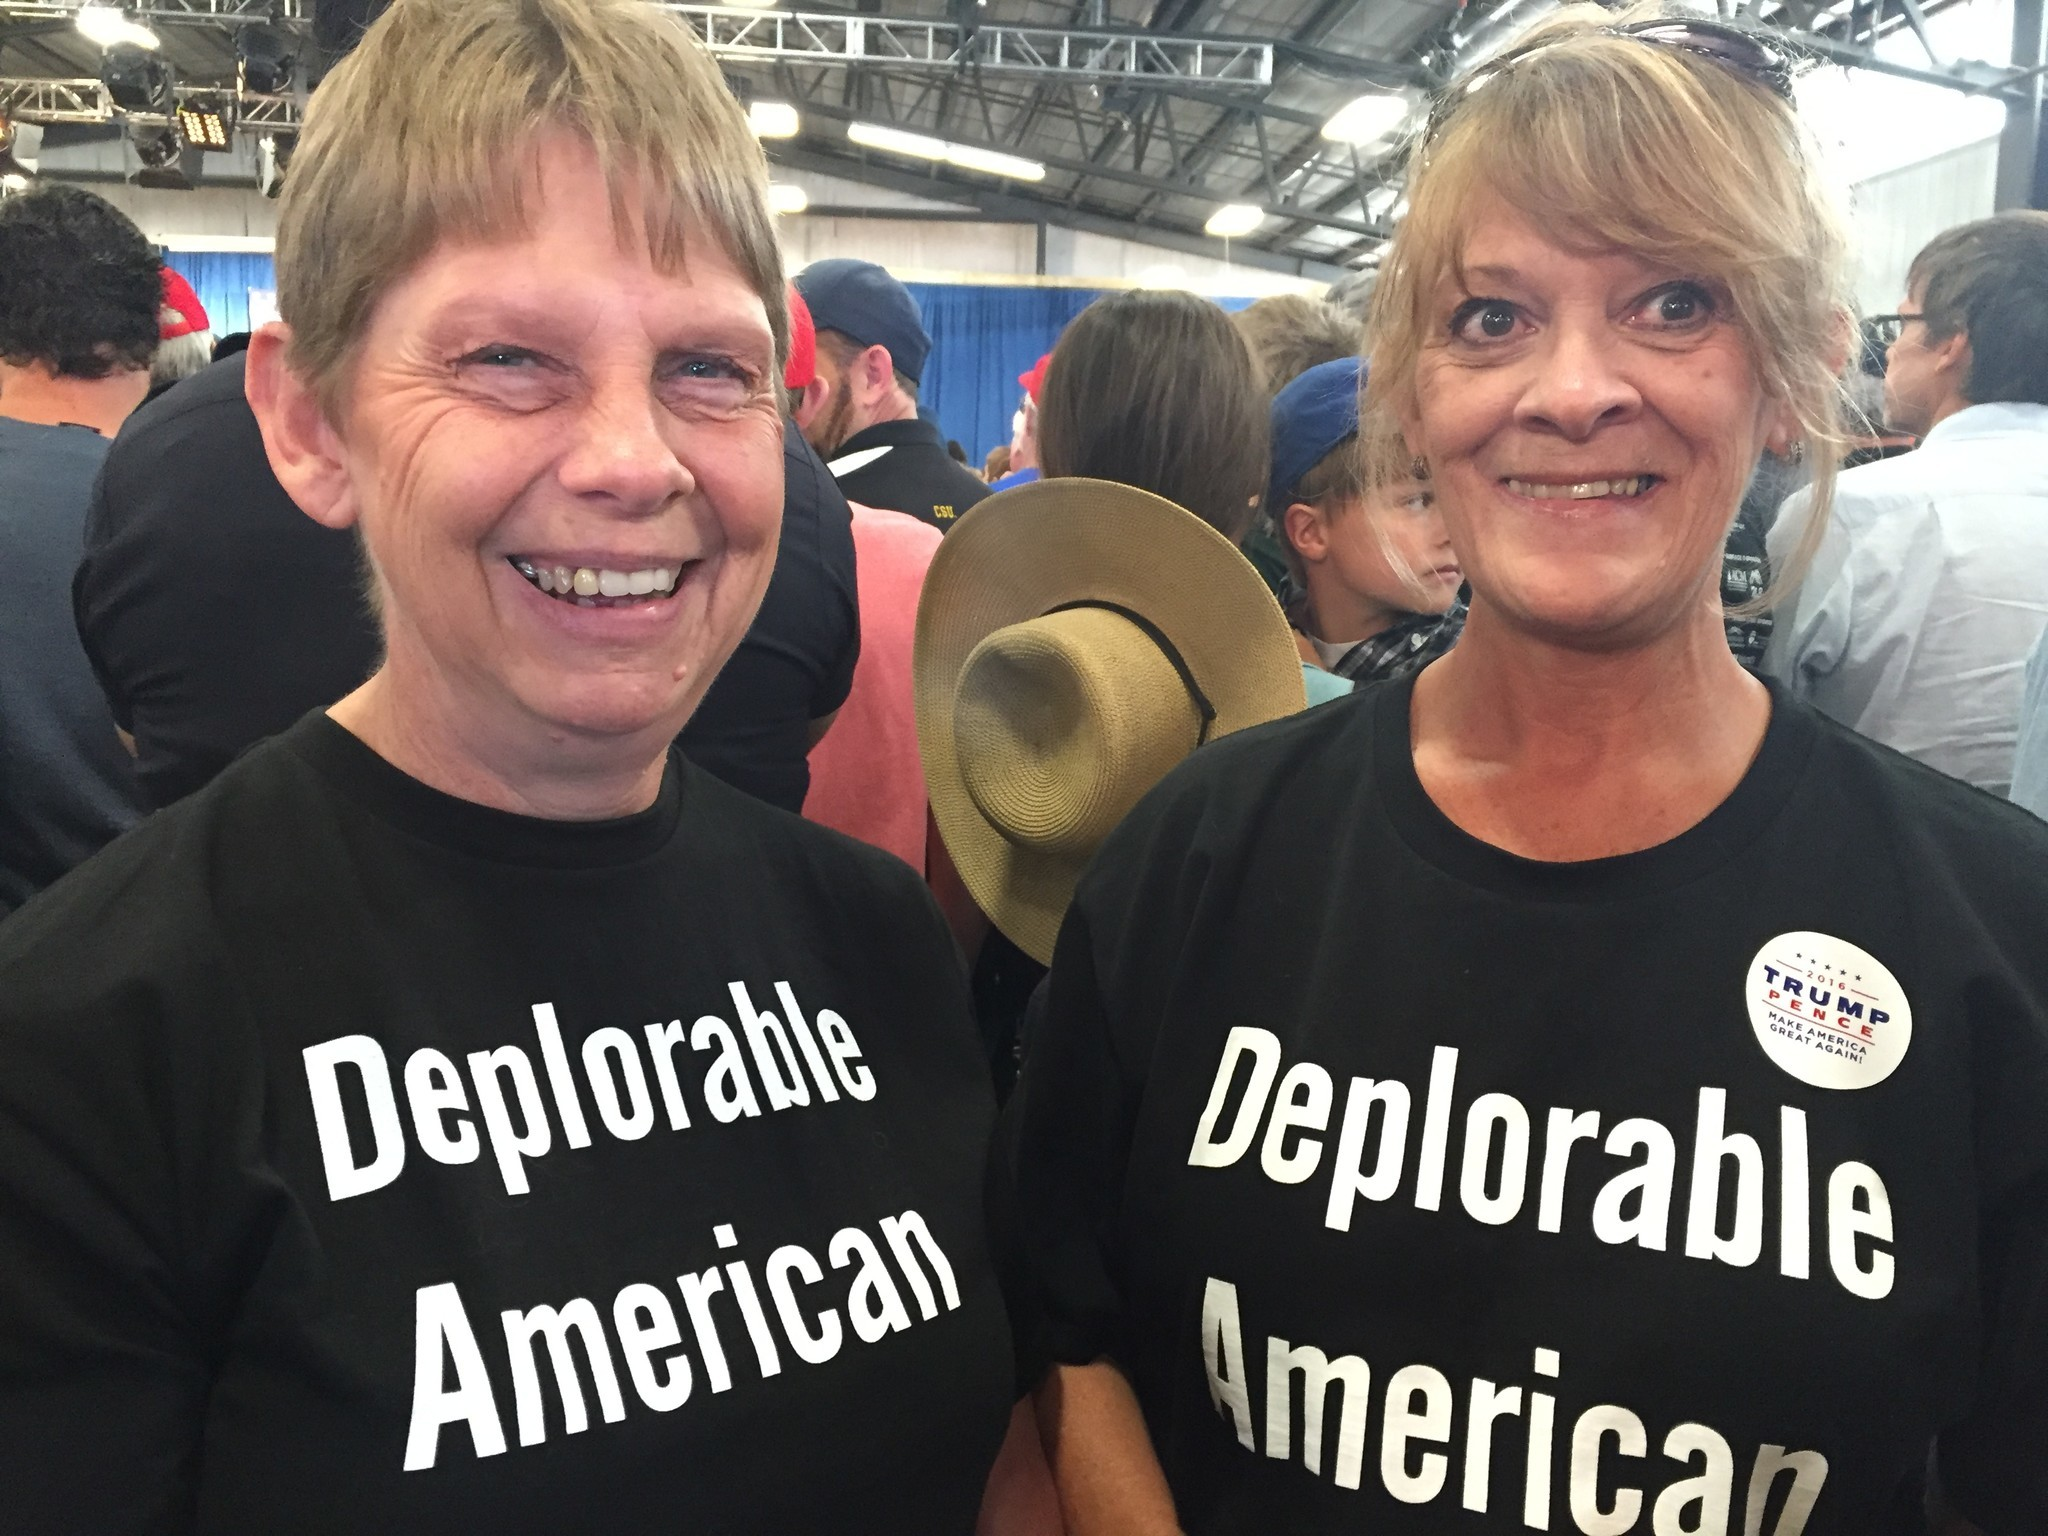 Kathy Smith, right, and her neighbor Tina Griffiths attend a Donald Trump rally in Colorado.